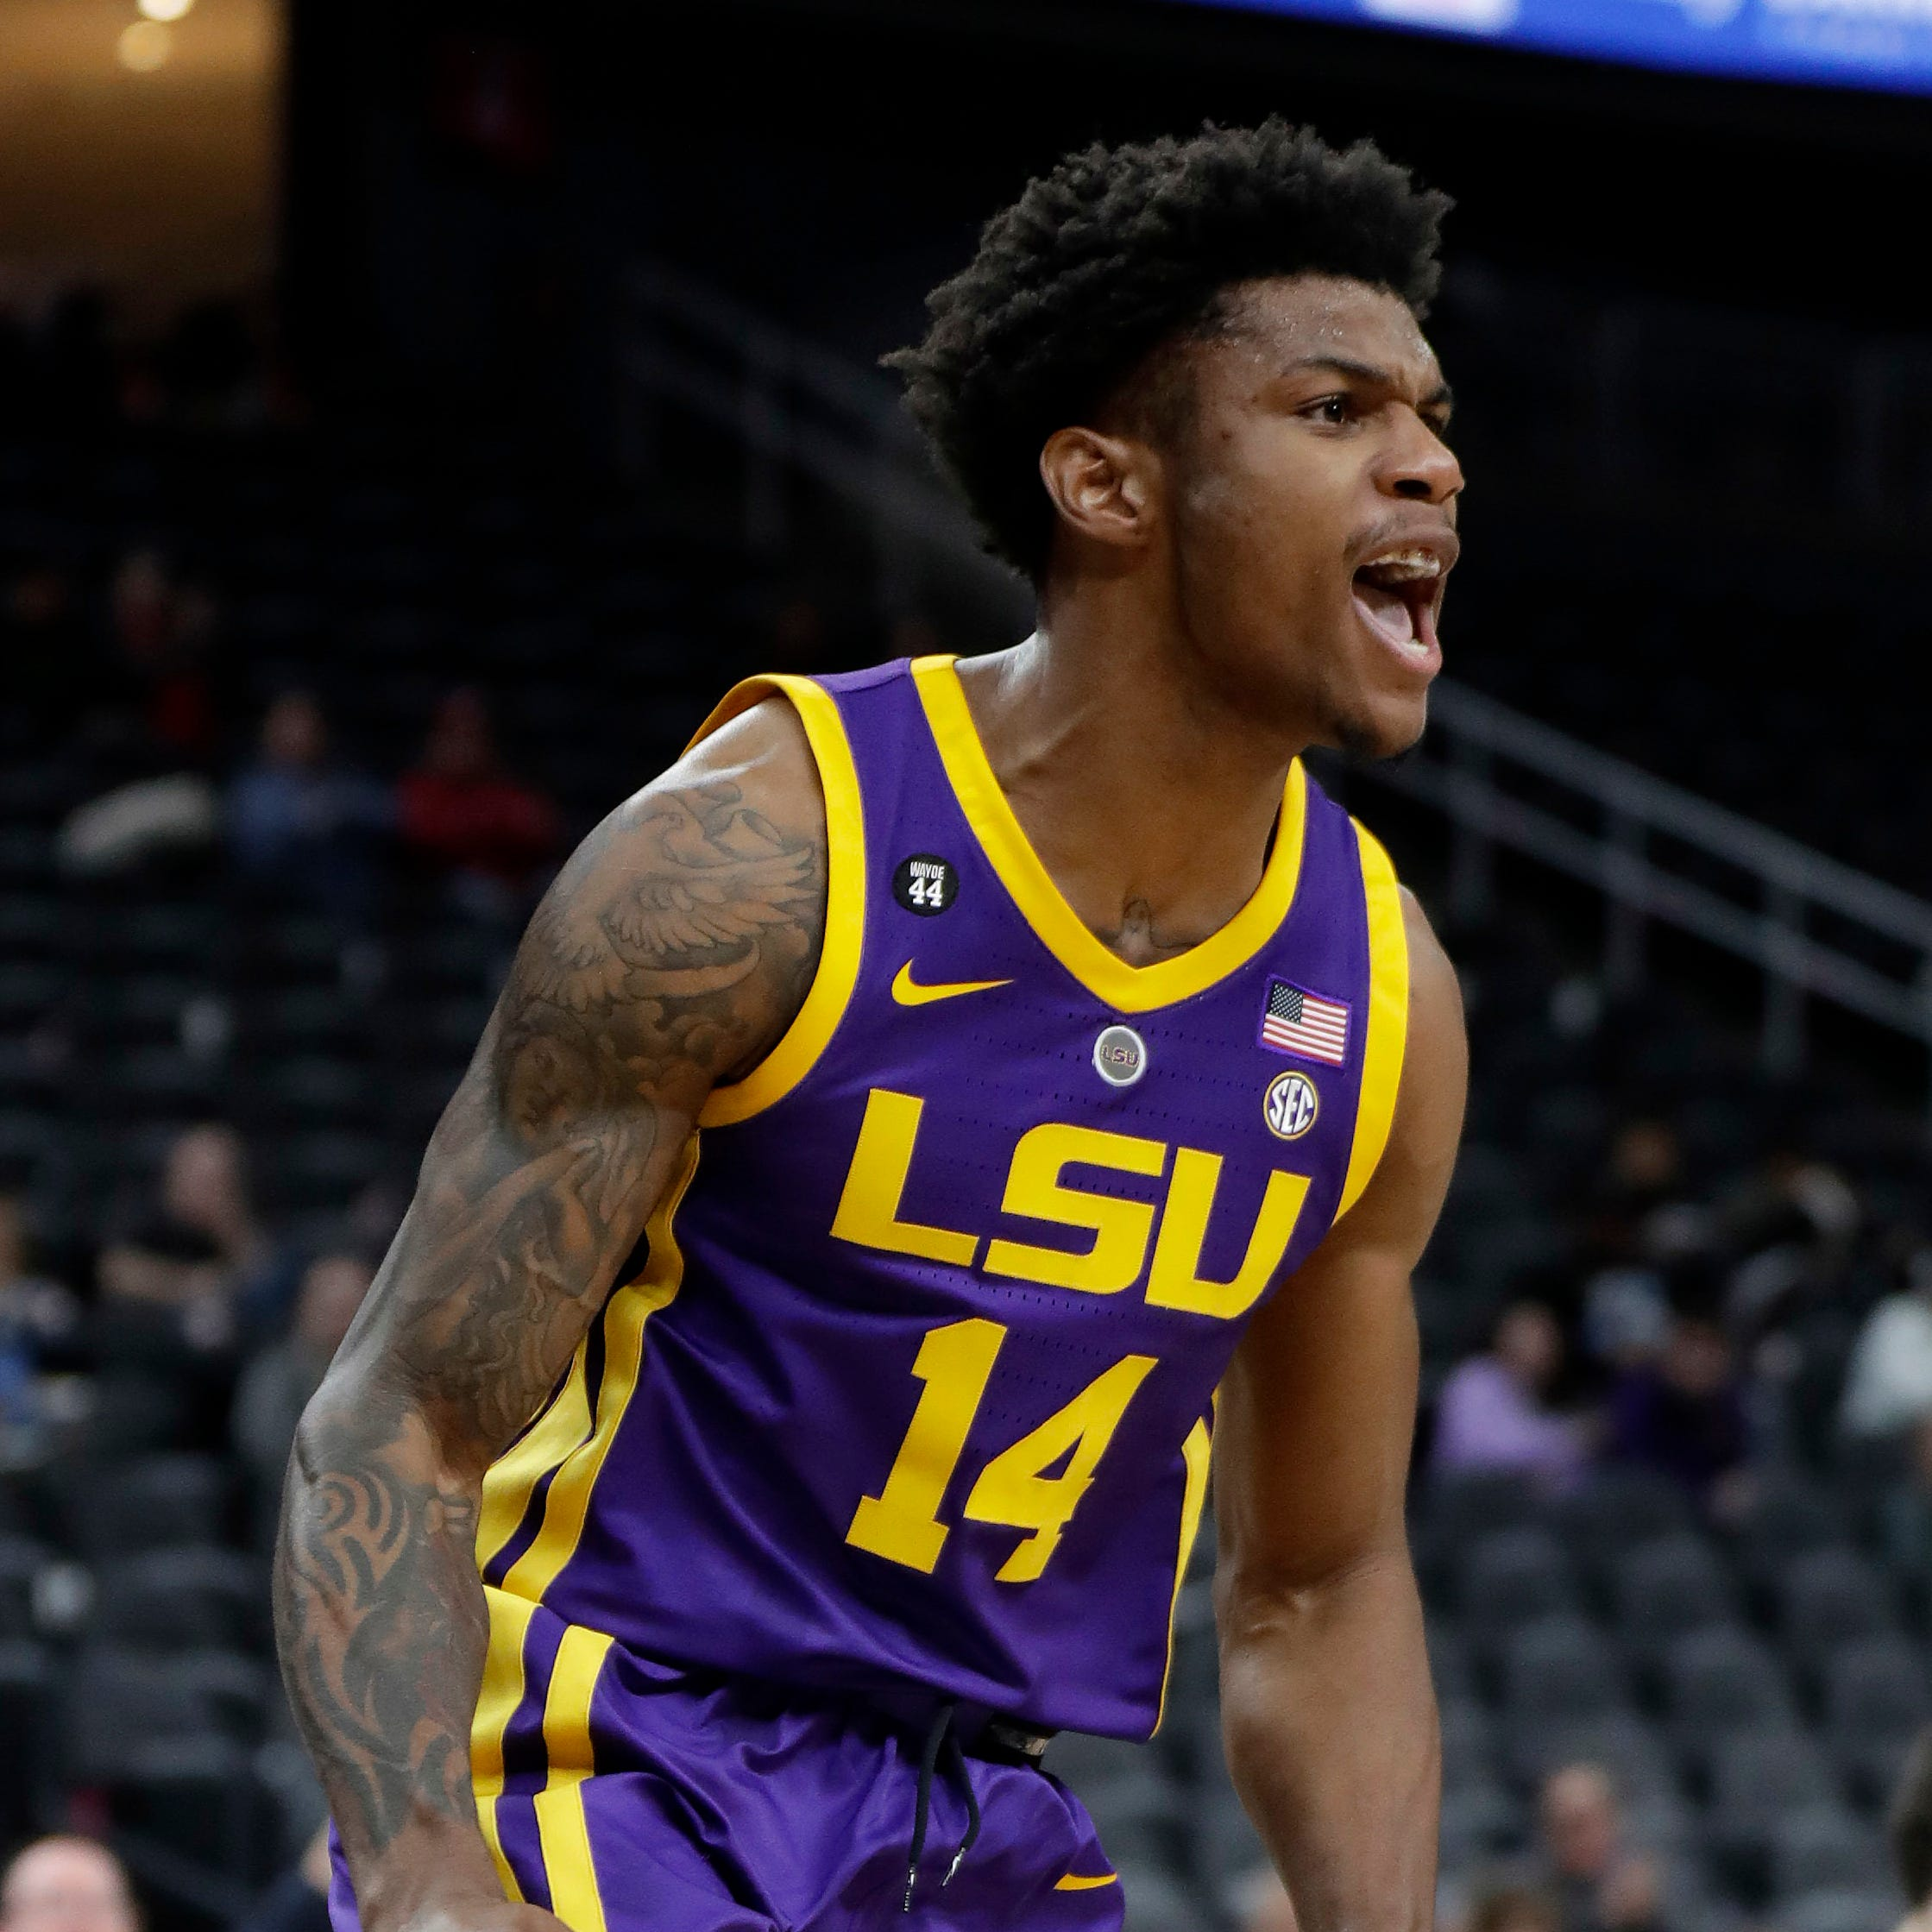 LSU loses lead, but this time it wins the game over Saint Mary's, 78-74, in Las Vegas